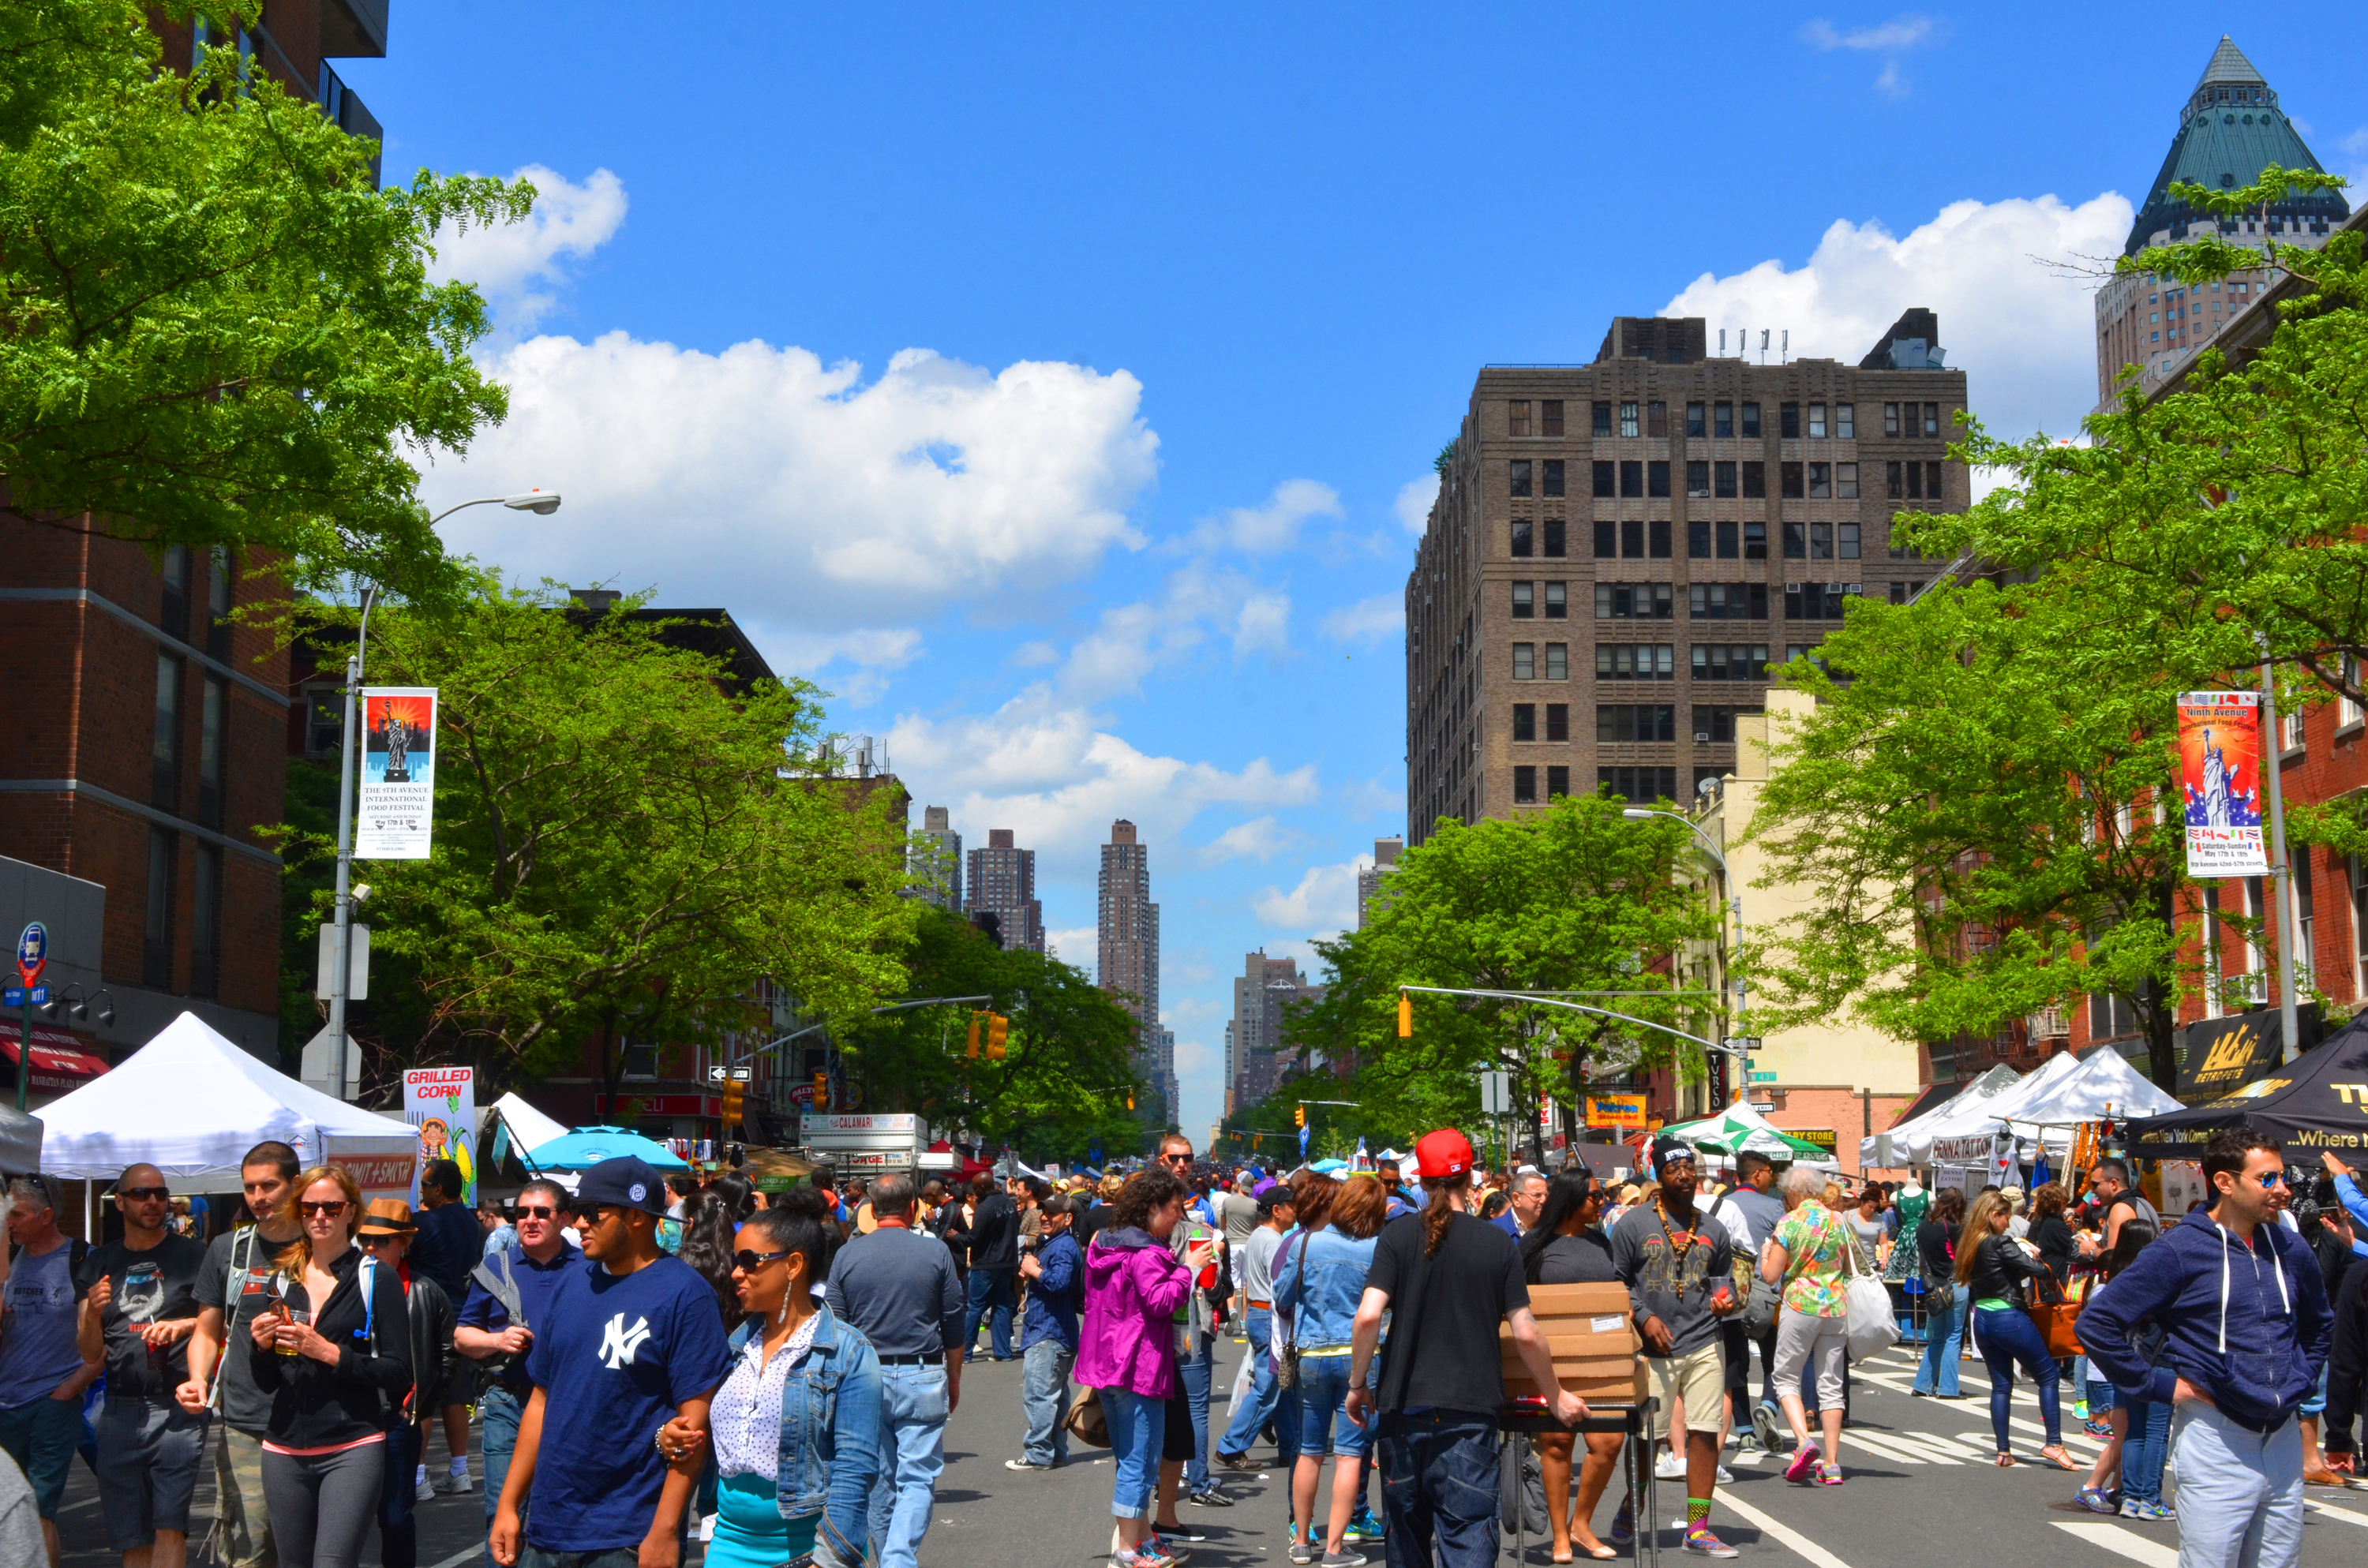 Ninth Avenue International Food Festival